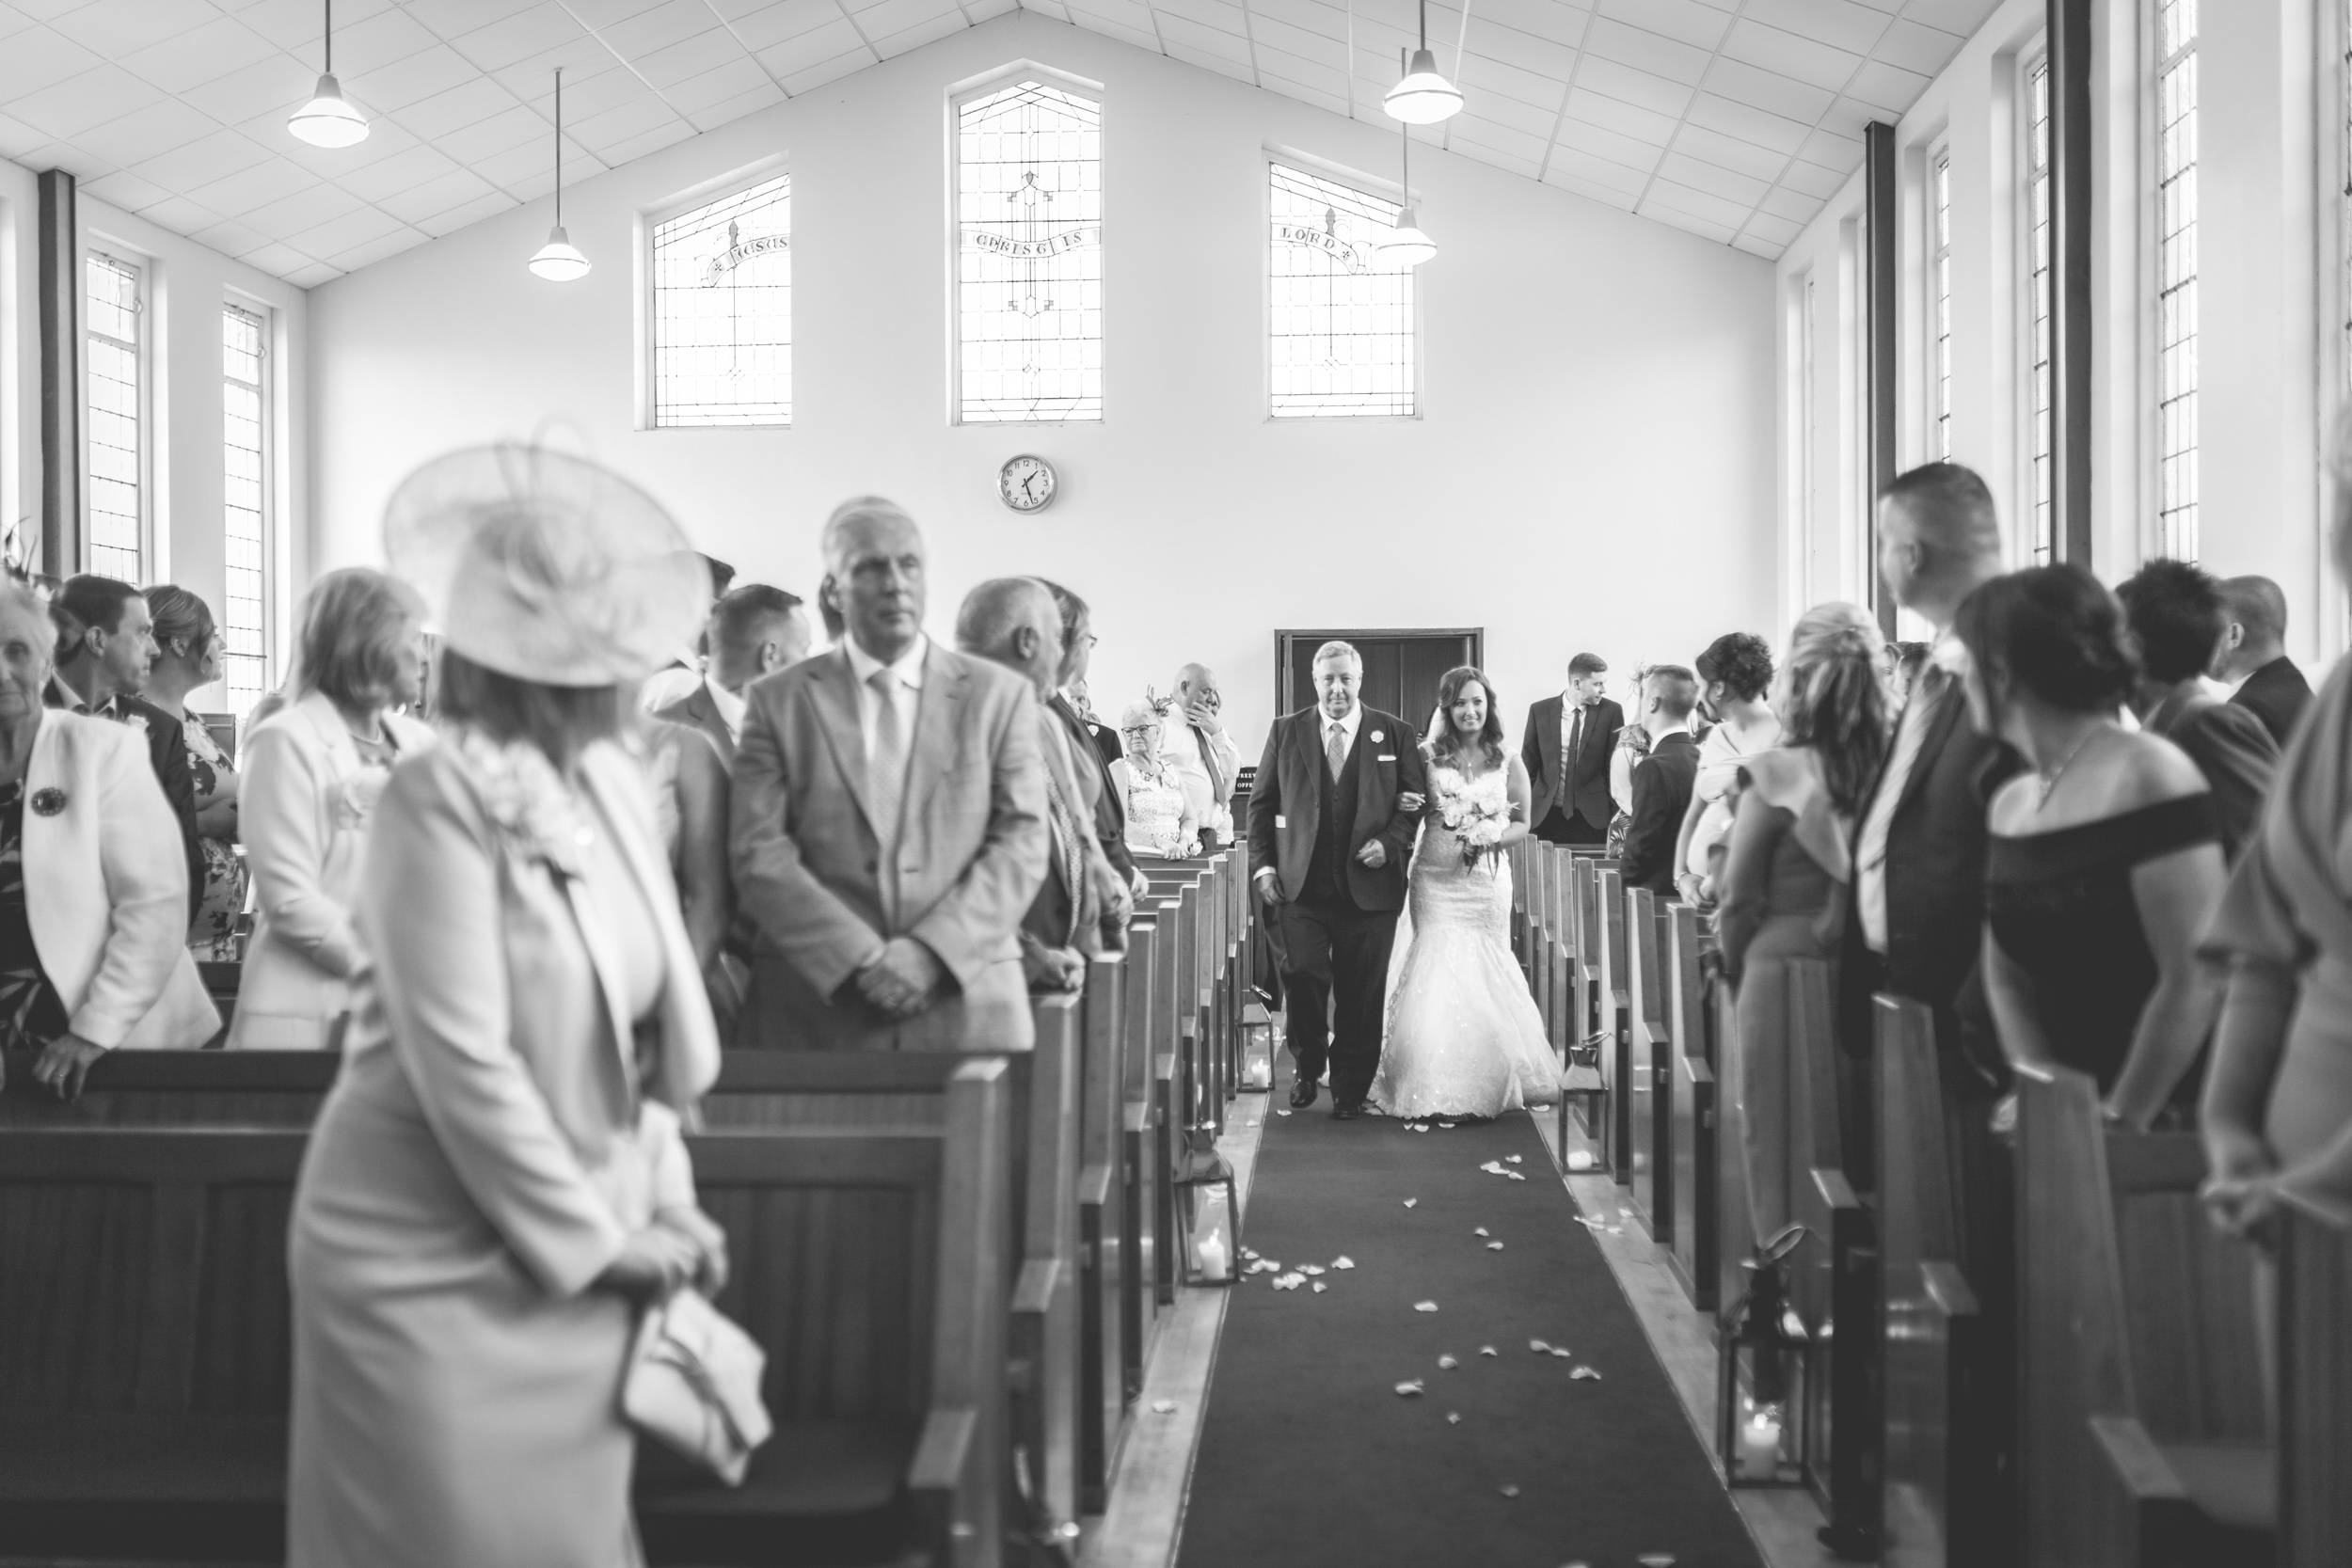 Brian McEwan | Northern Ireland Wedding Photographer | Rebecca & Michael | Ceremony-17.jpg